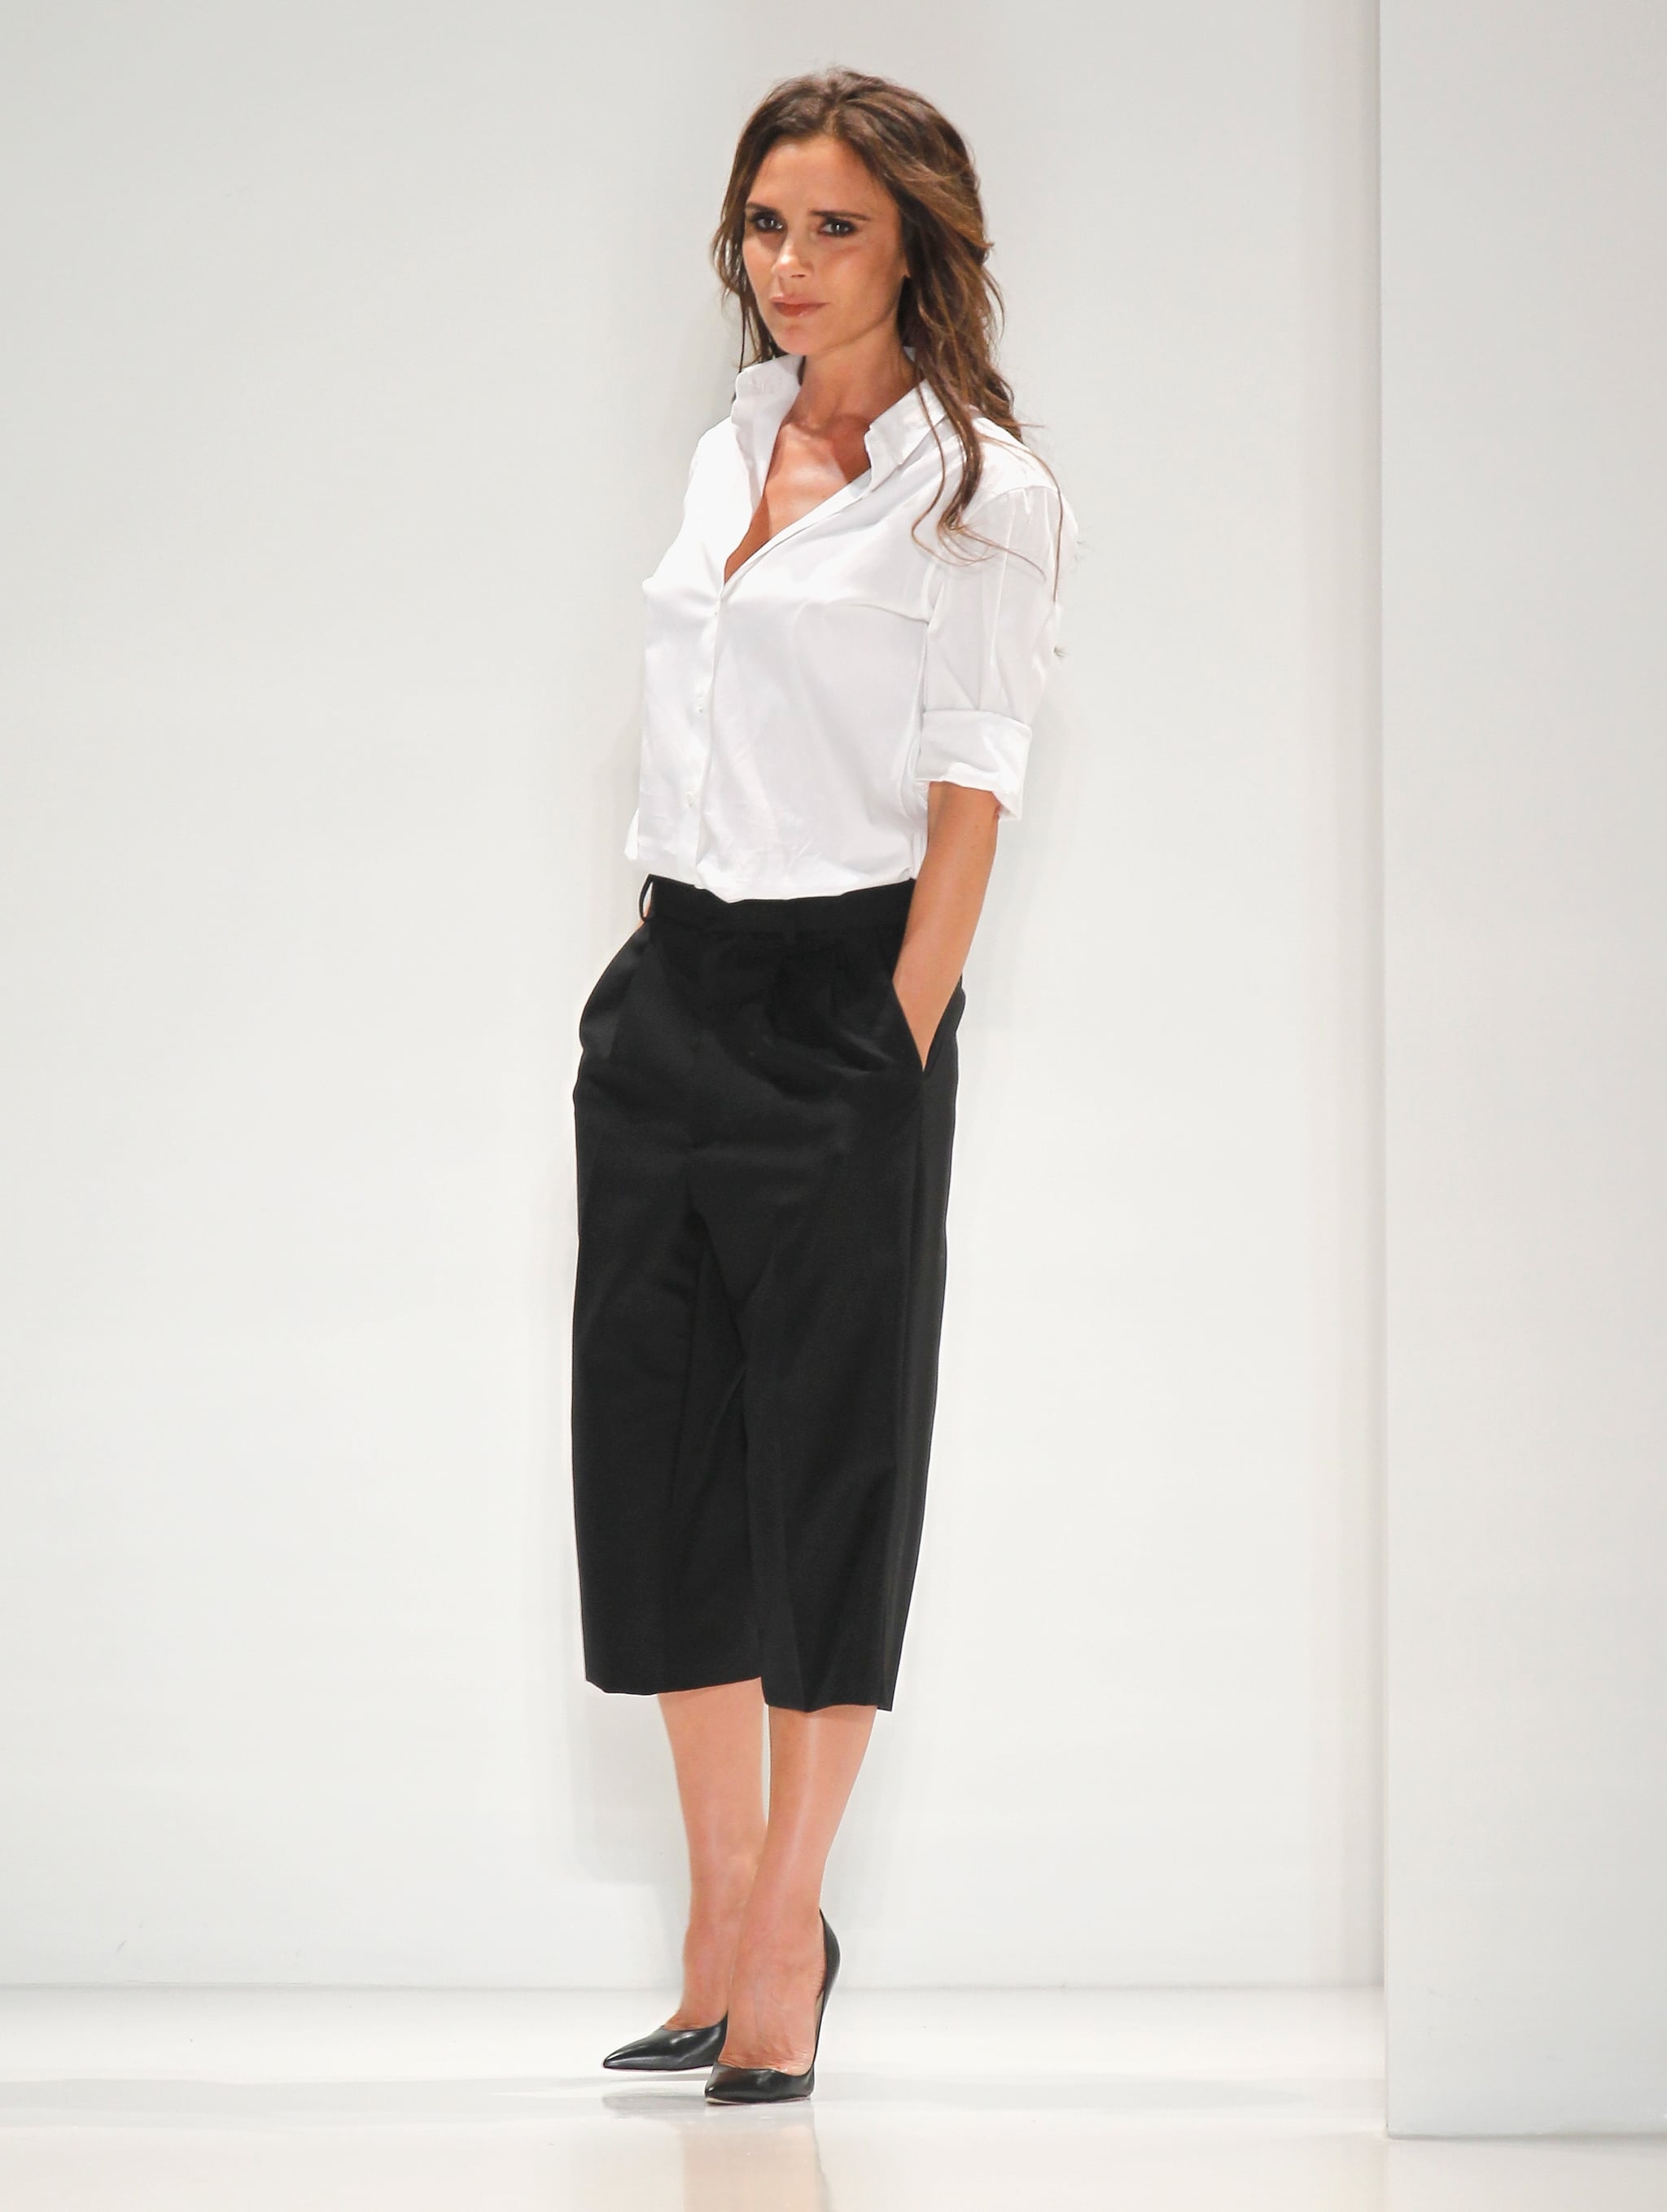 Victoria Beckham took the stage at her Spring 2014 runway show on Sunday.